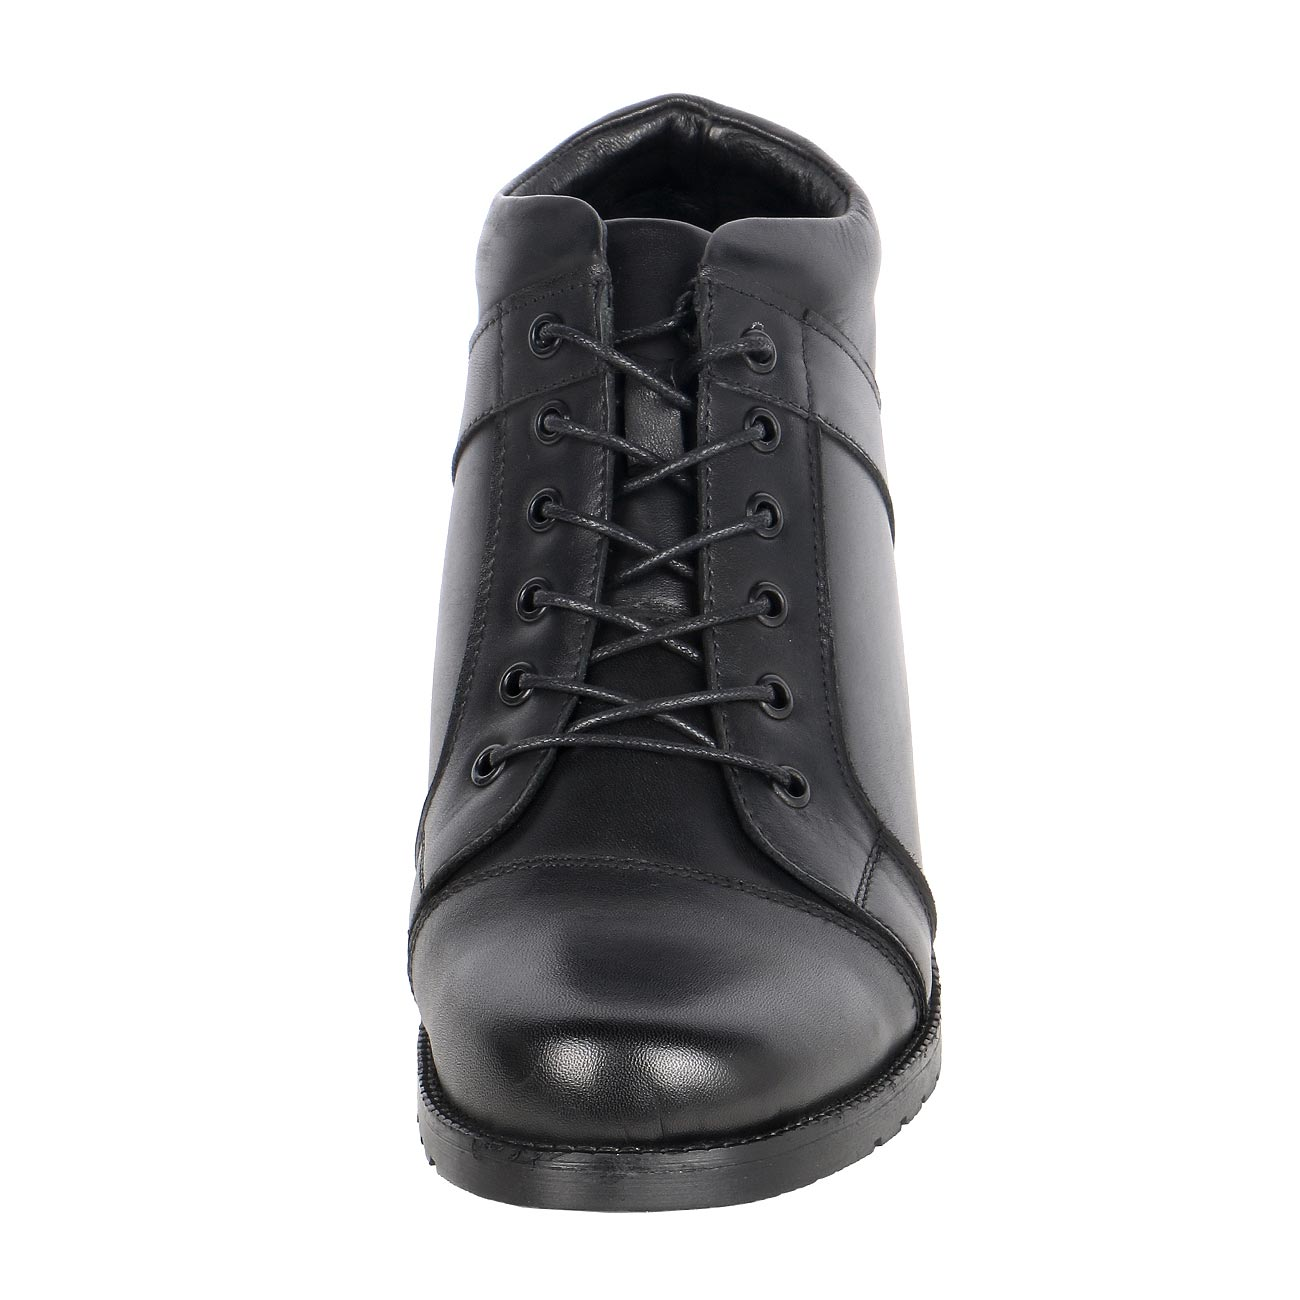 Tall Men's Security & Guard High Quality Shoes